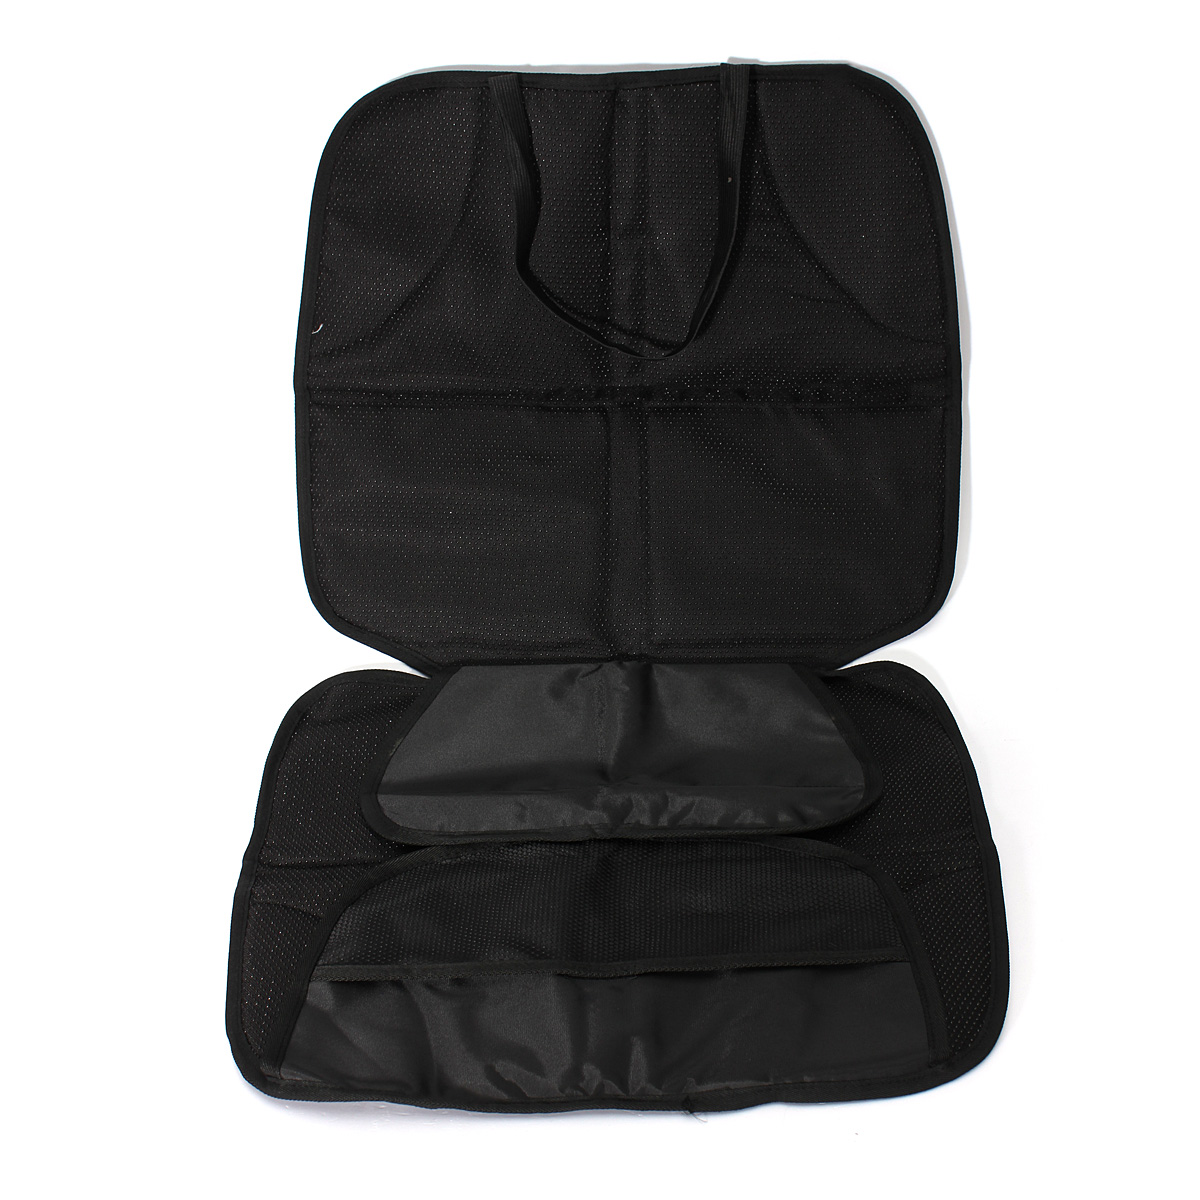 car auto baby infant child seat saver protector safety anti slip cushion cover lazada malaysia. Black Bedroom Furniture Sets. Home Design Ideas